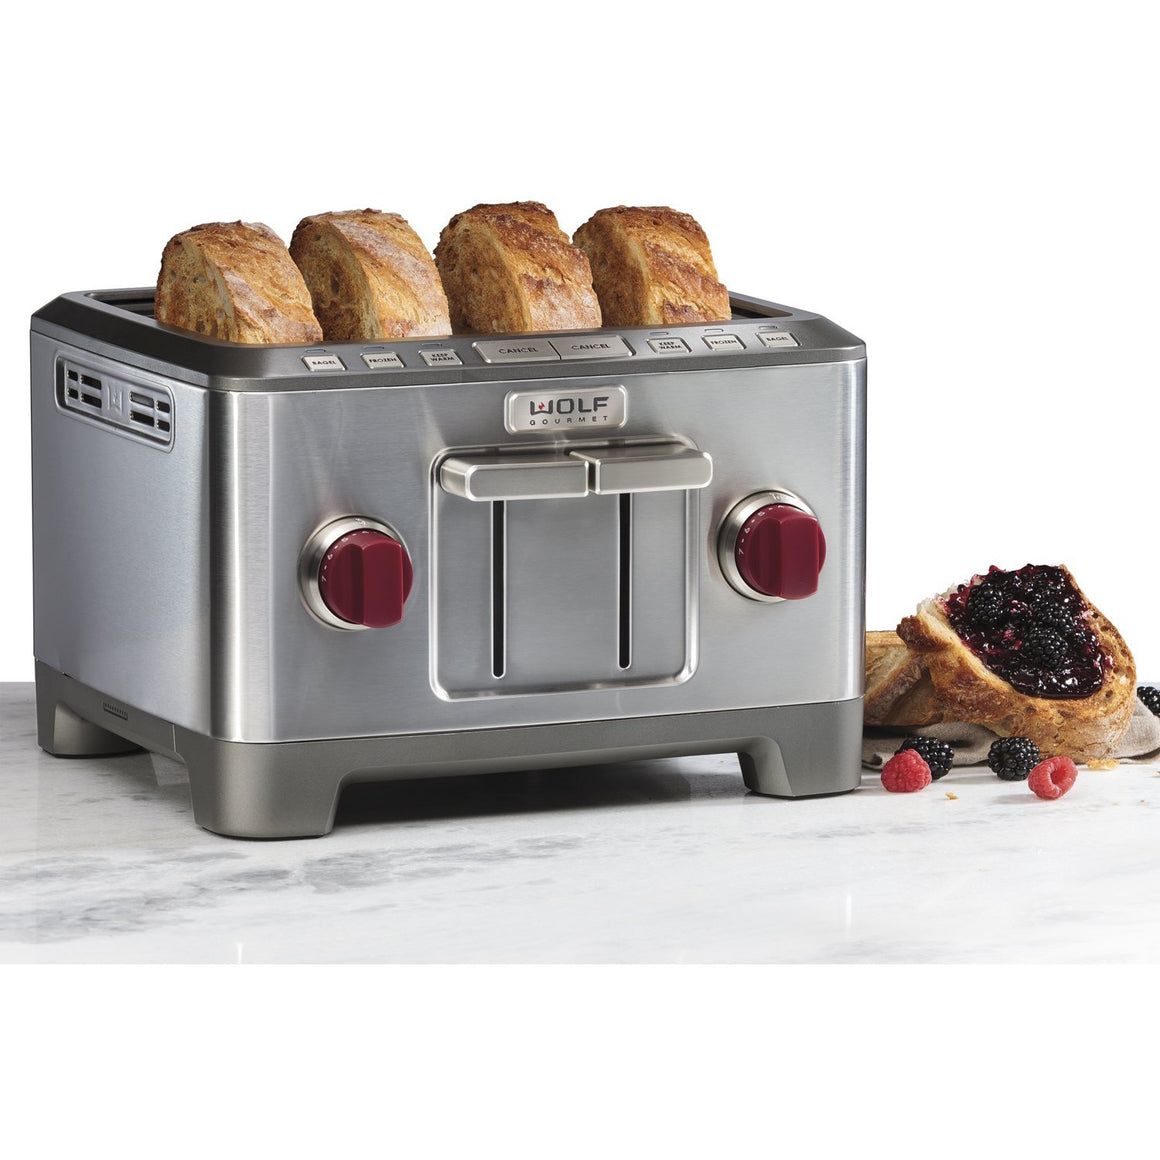 4 Slice Toaster (Red Knobs)